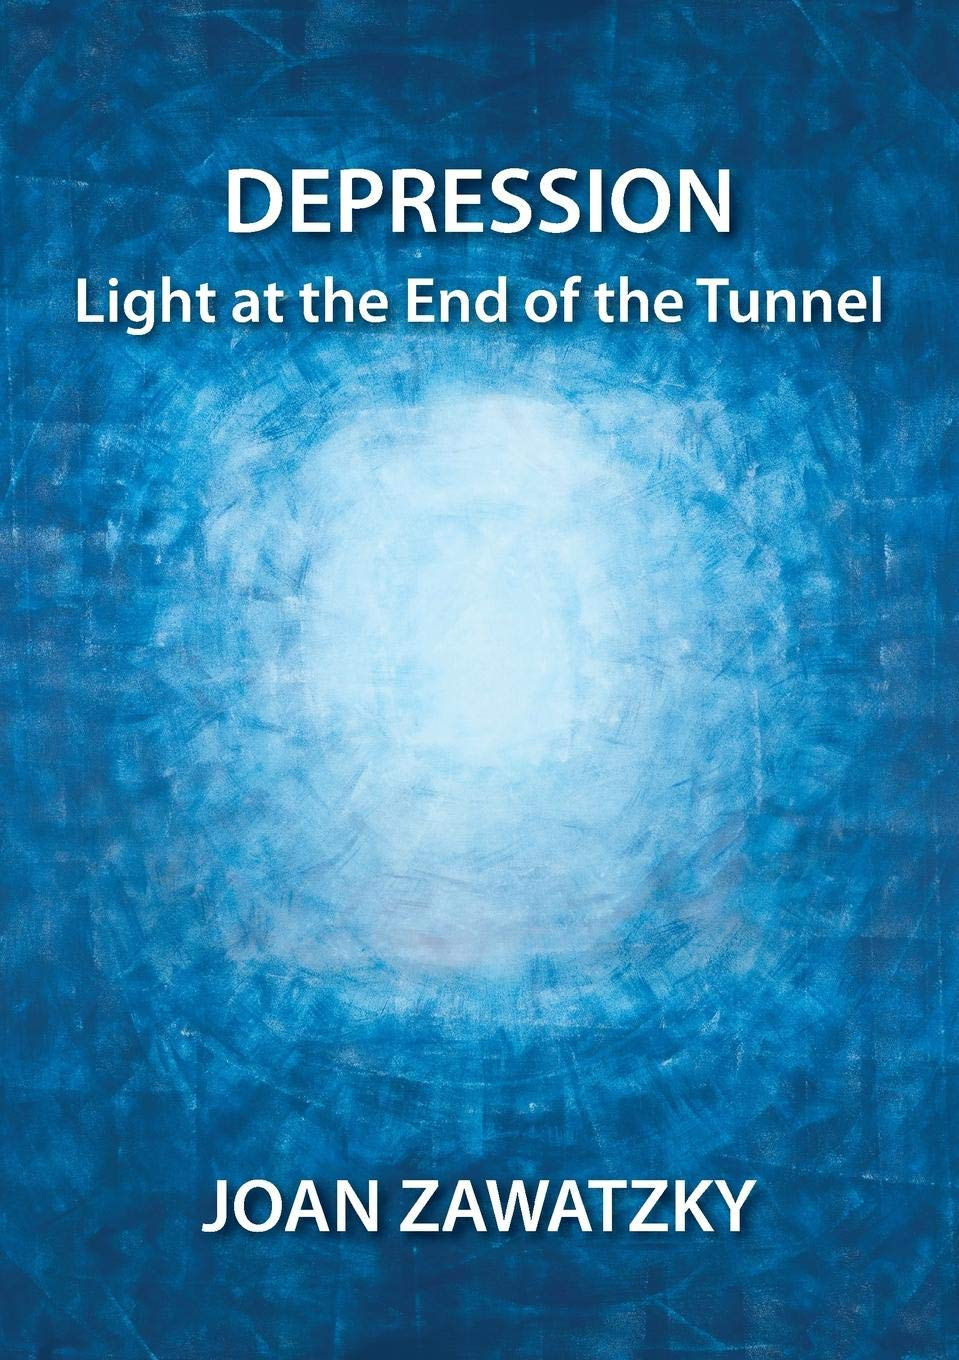 If Light At End Of Tunnel Is Green You >> Depression Light At The End Of The Tunnel Joan Zawatzky